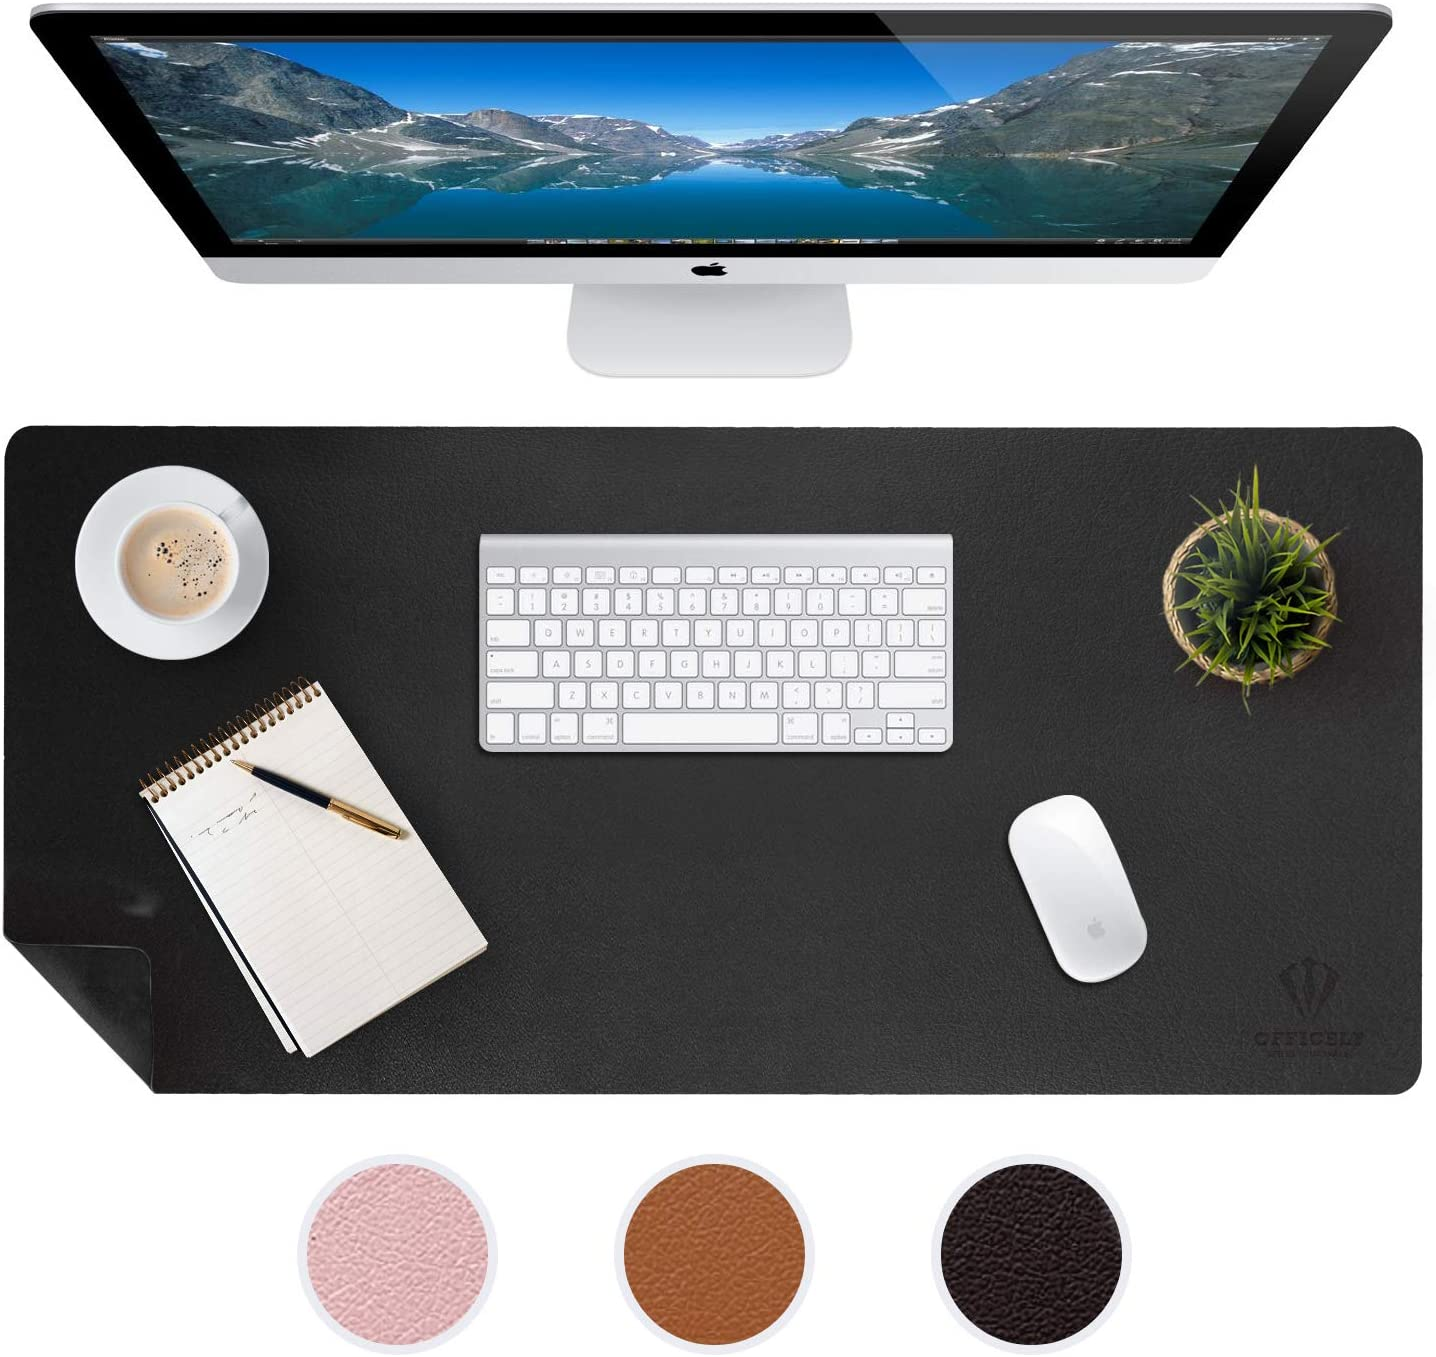 Large Leather Desk Mats for Keyboard and Mouse Pad, Anti-Skid Backing with Heat Resistant and Waterproof Surface, Responsive Desktop for Gaming, Writing, or Home Office Work (Black, 24X48)